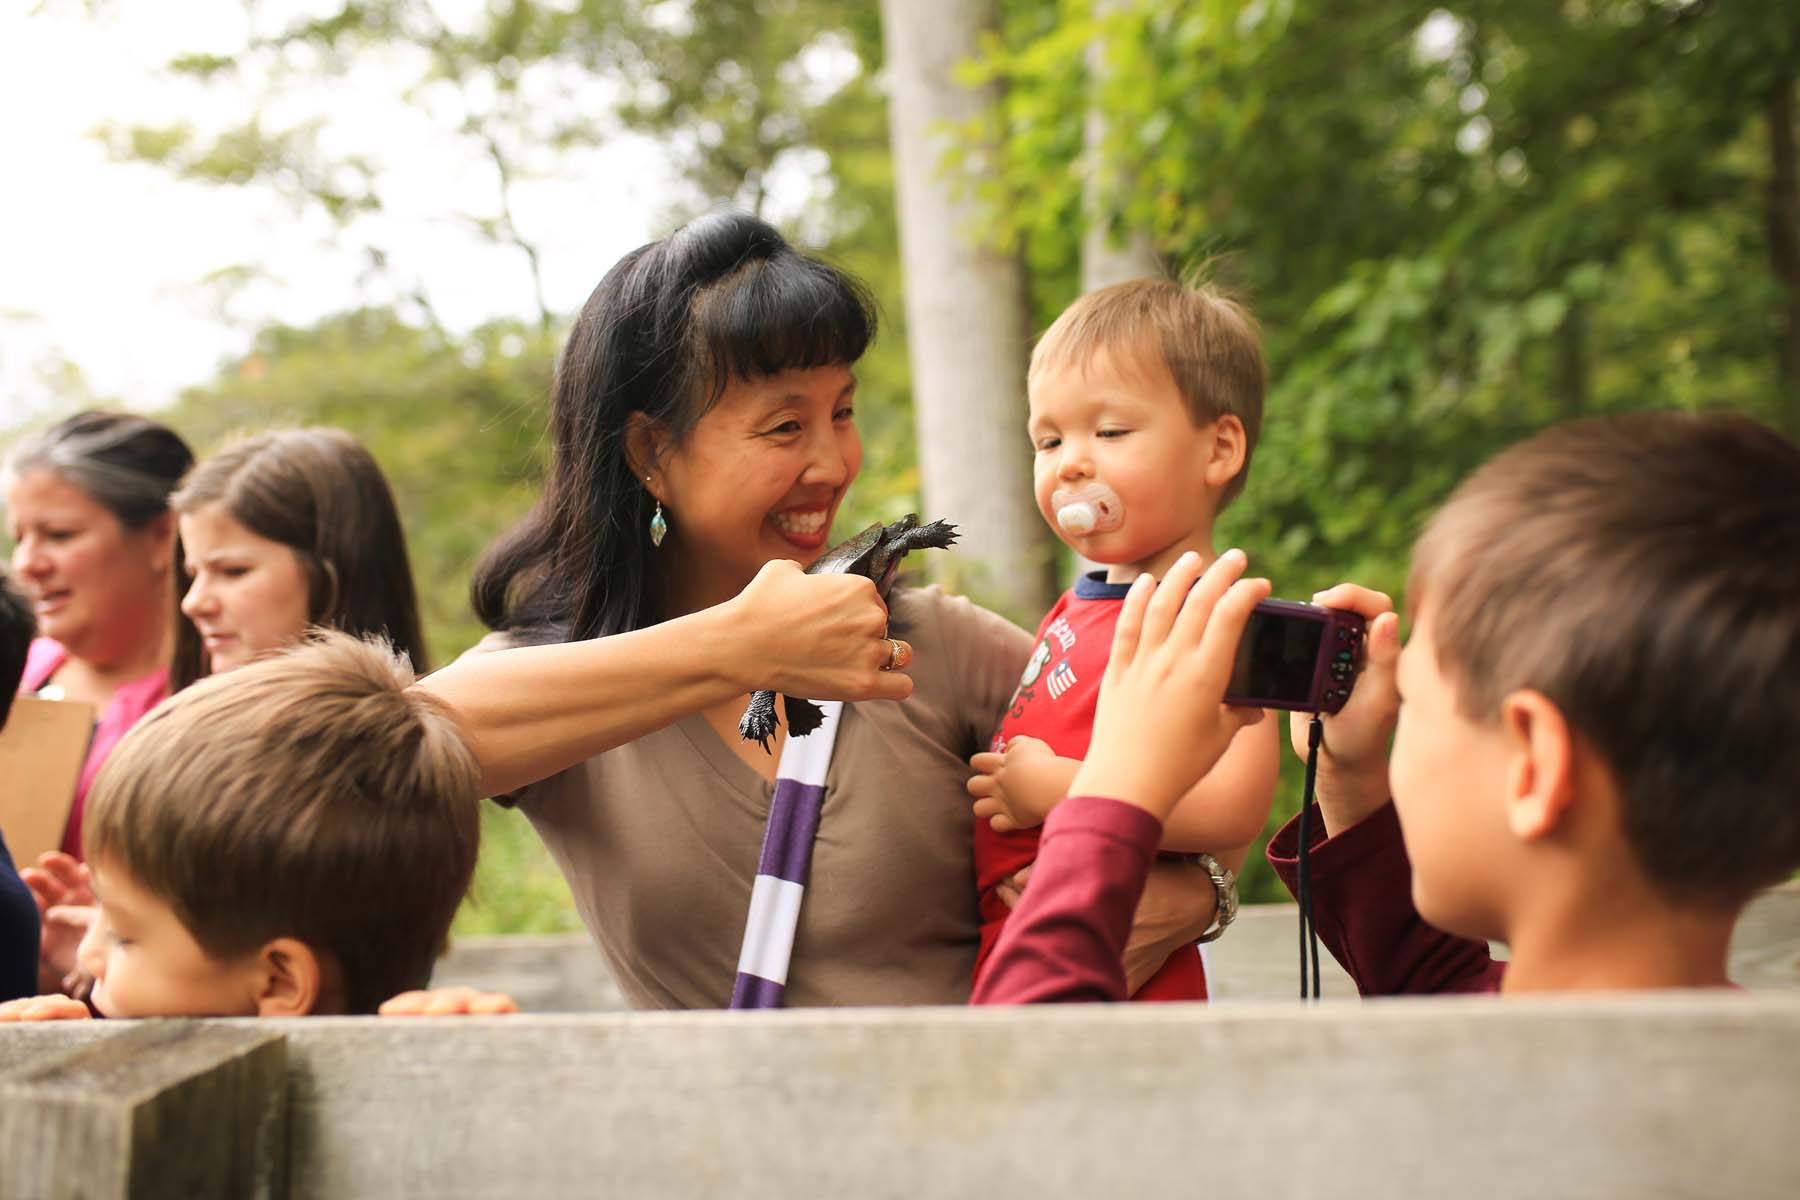 A woman introduces her toddler son to a turtle. She is smiling and her son is smiling behind his pacifier. Another of her sons photographs the scene with a cell phone. There are trees in the background and a boardwalk rail in the foreground.